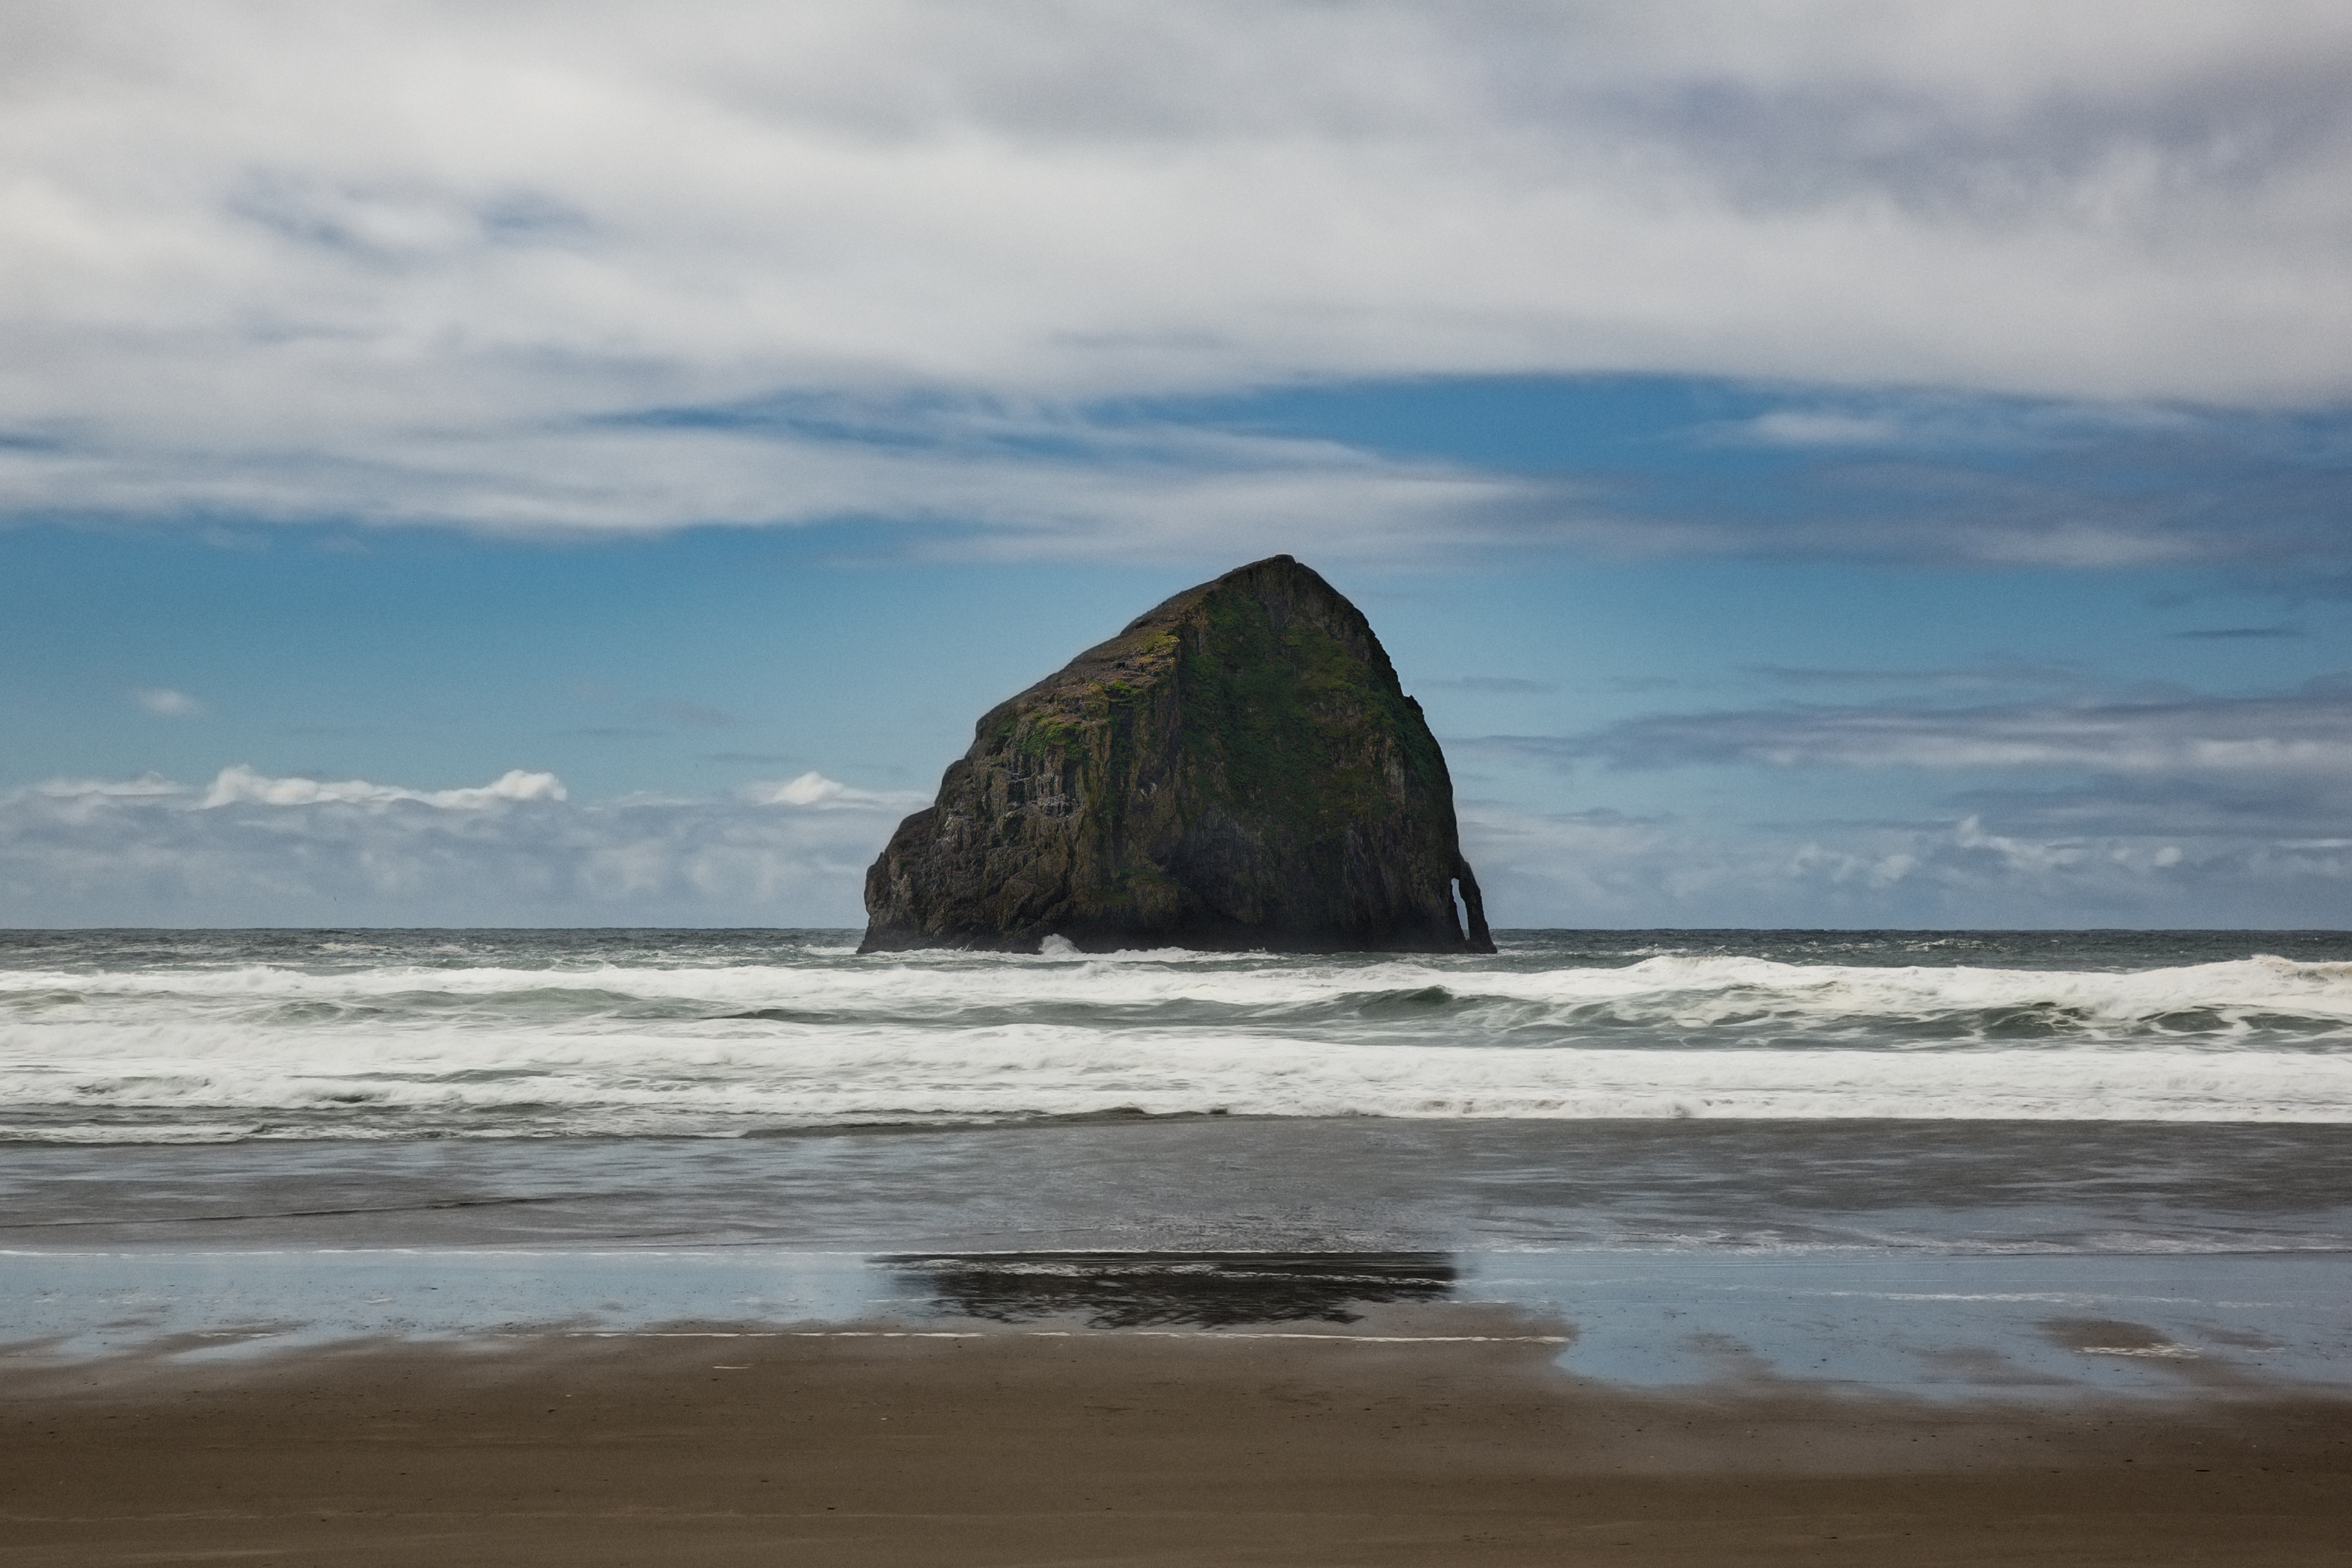 Somewhere nearby Cannon Beach